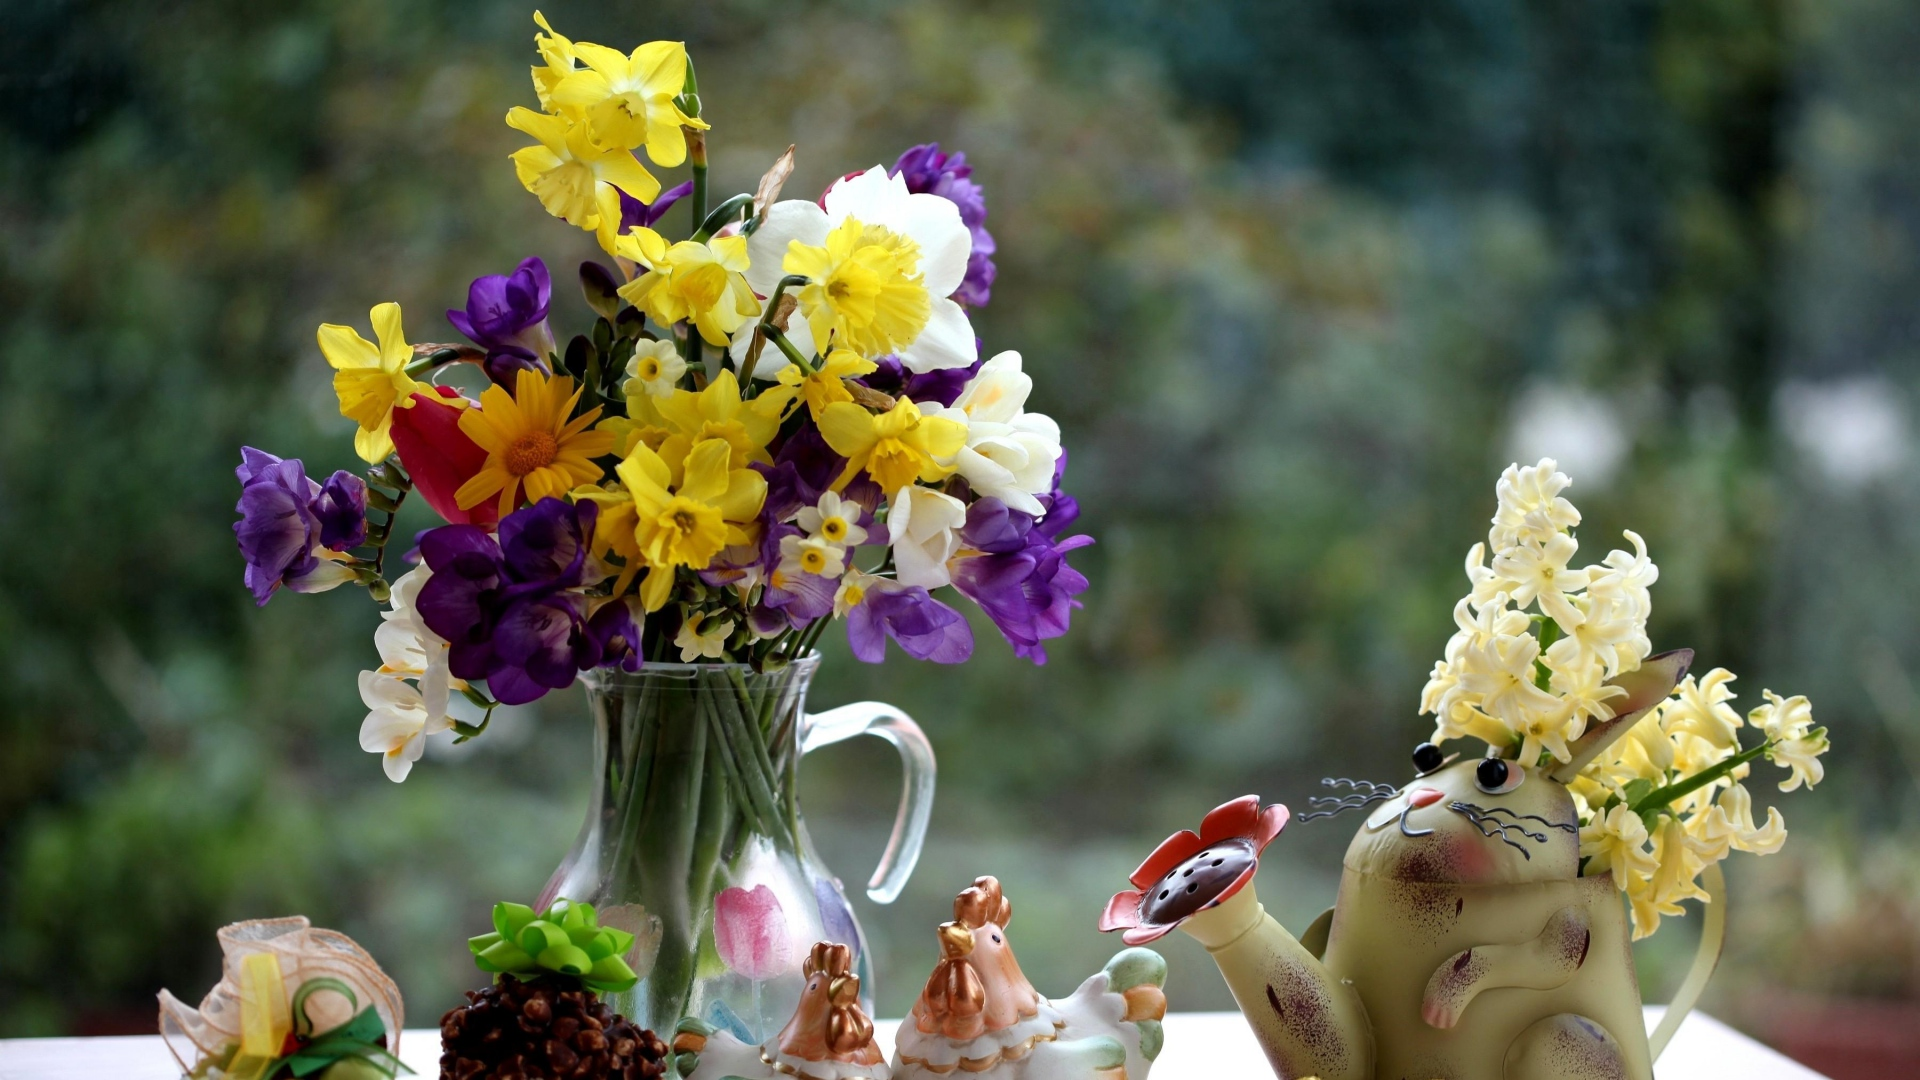 Daffodils And Tulips Wallpaper